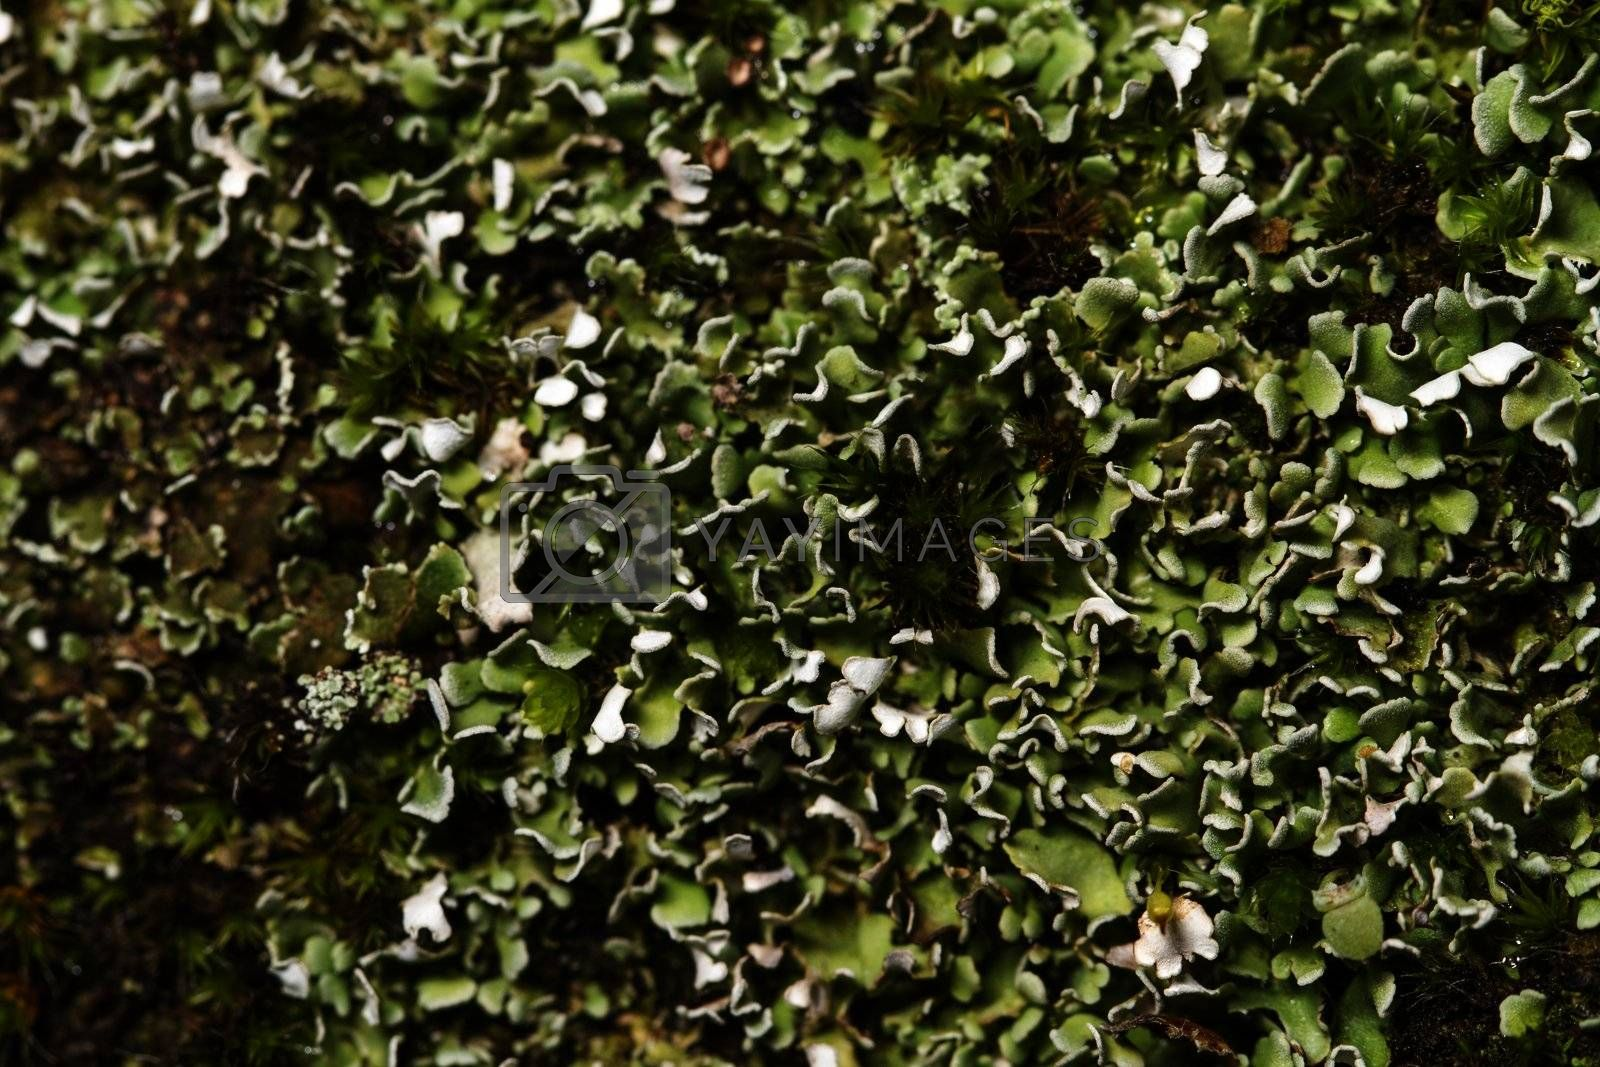 Close up view of some dry lichen on a tree.